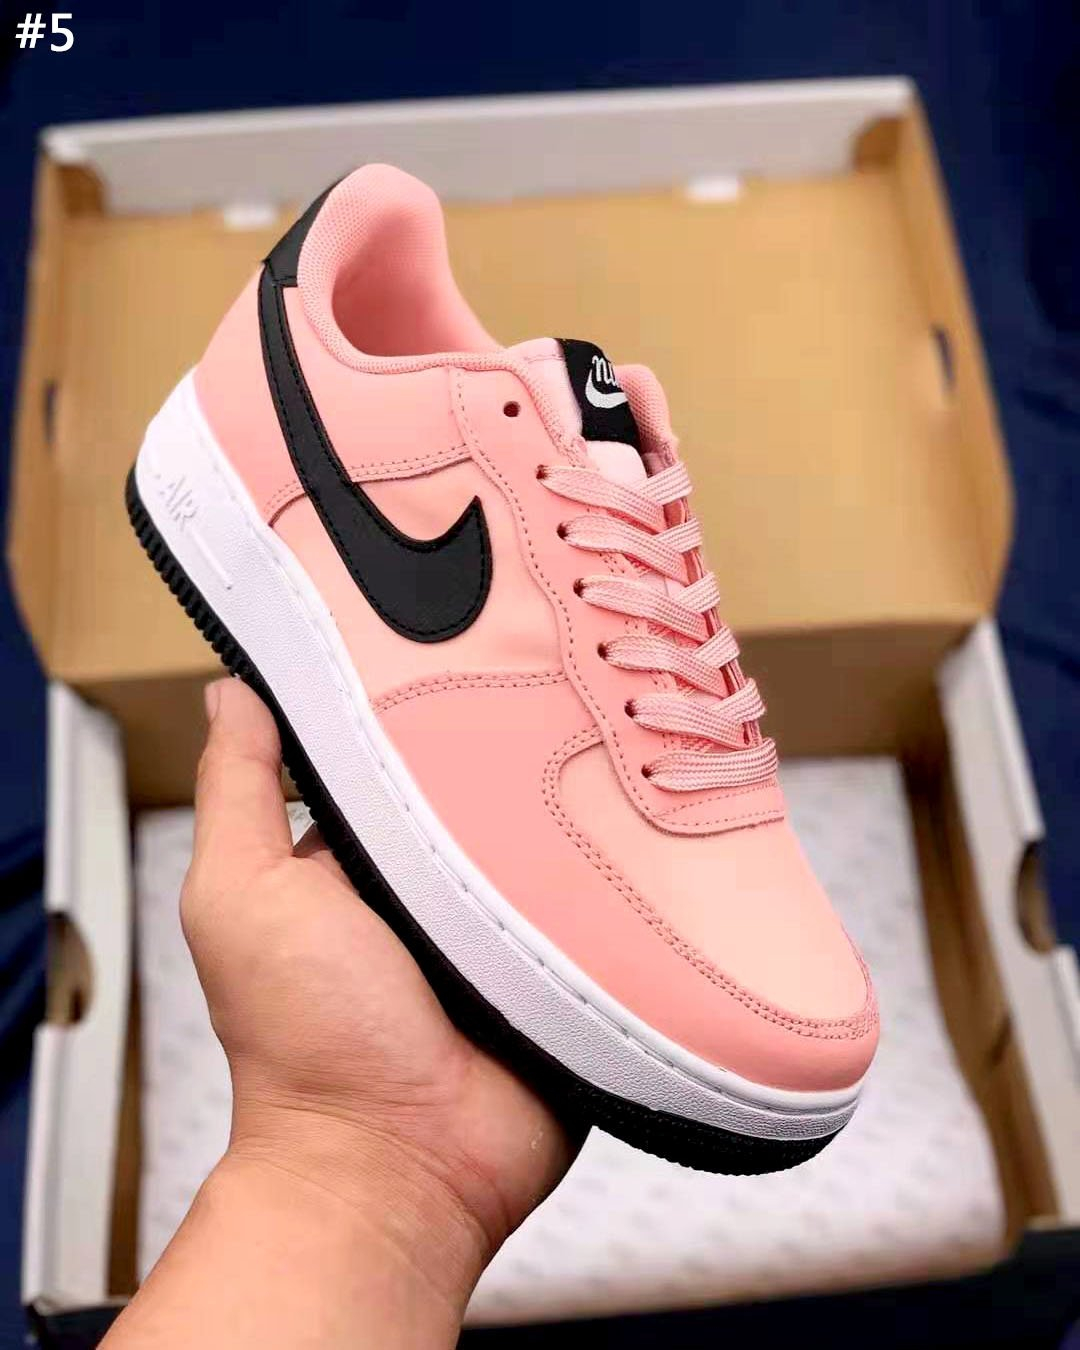 Image of NIKE AIR FORCE 1 tide brand men's and women's wild casual low-top shoes #5